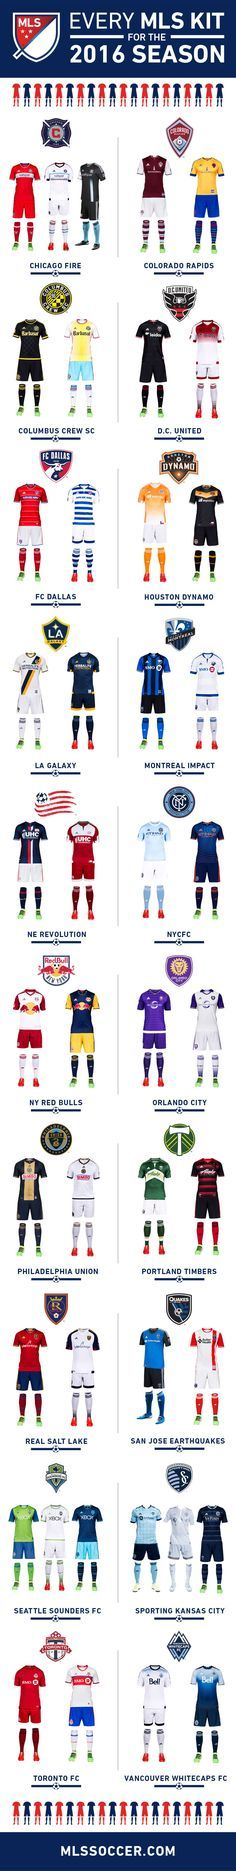 After weeks of releases, we've finally rolled out all of the new MLS jerseys for 2016. But, naturally, they join some already established designs. In time for the start of the regular season this #SoccerSunday, here's a handy graphic with every kit in rotation for every team this year.